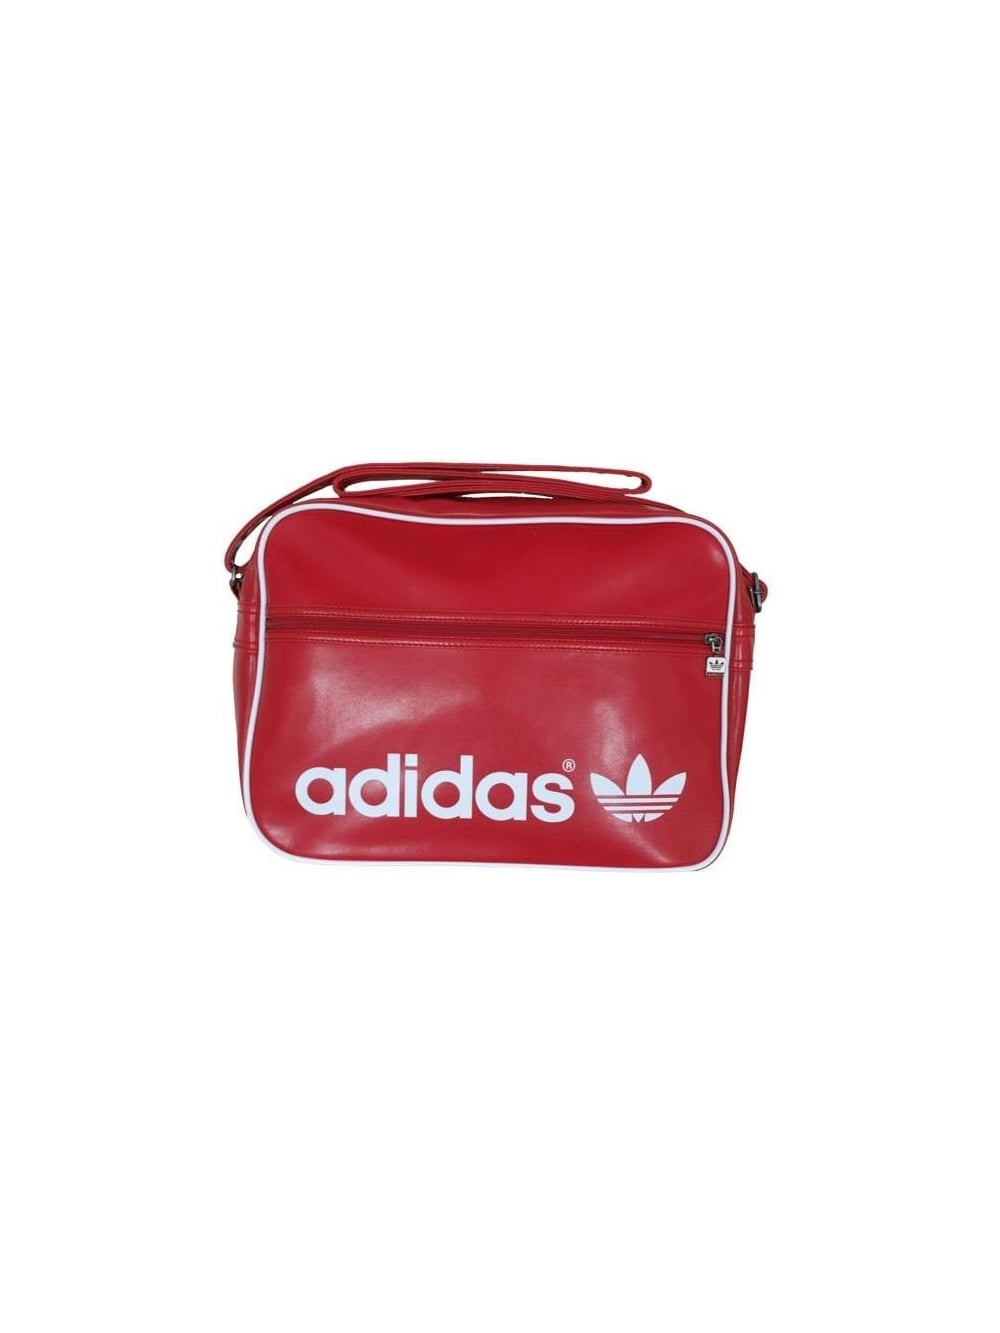 35eecfb72b Mens adidas Originals Airline Bag - Red | SALE | Buy Online UK